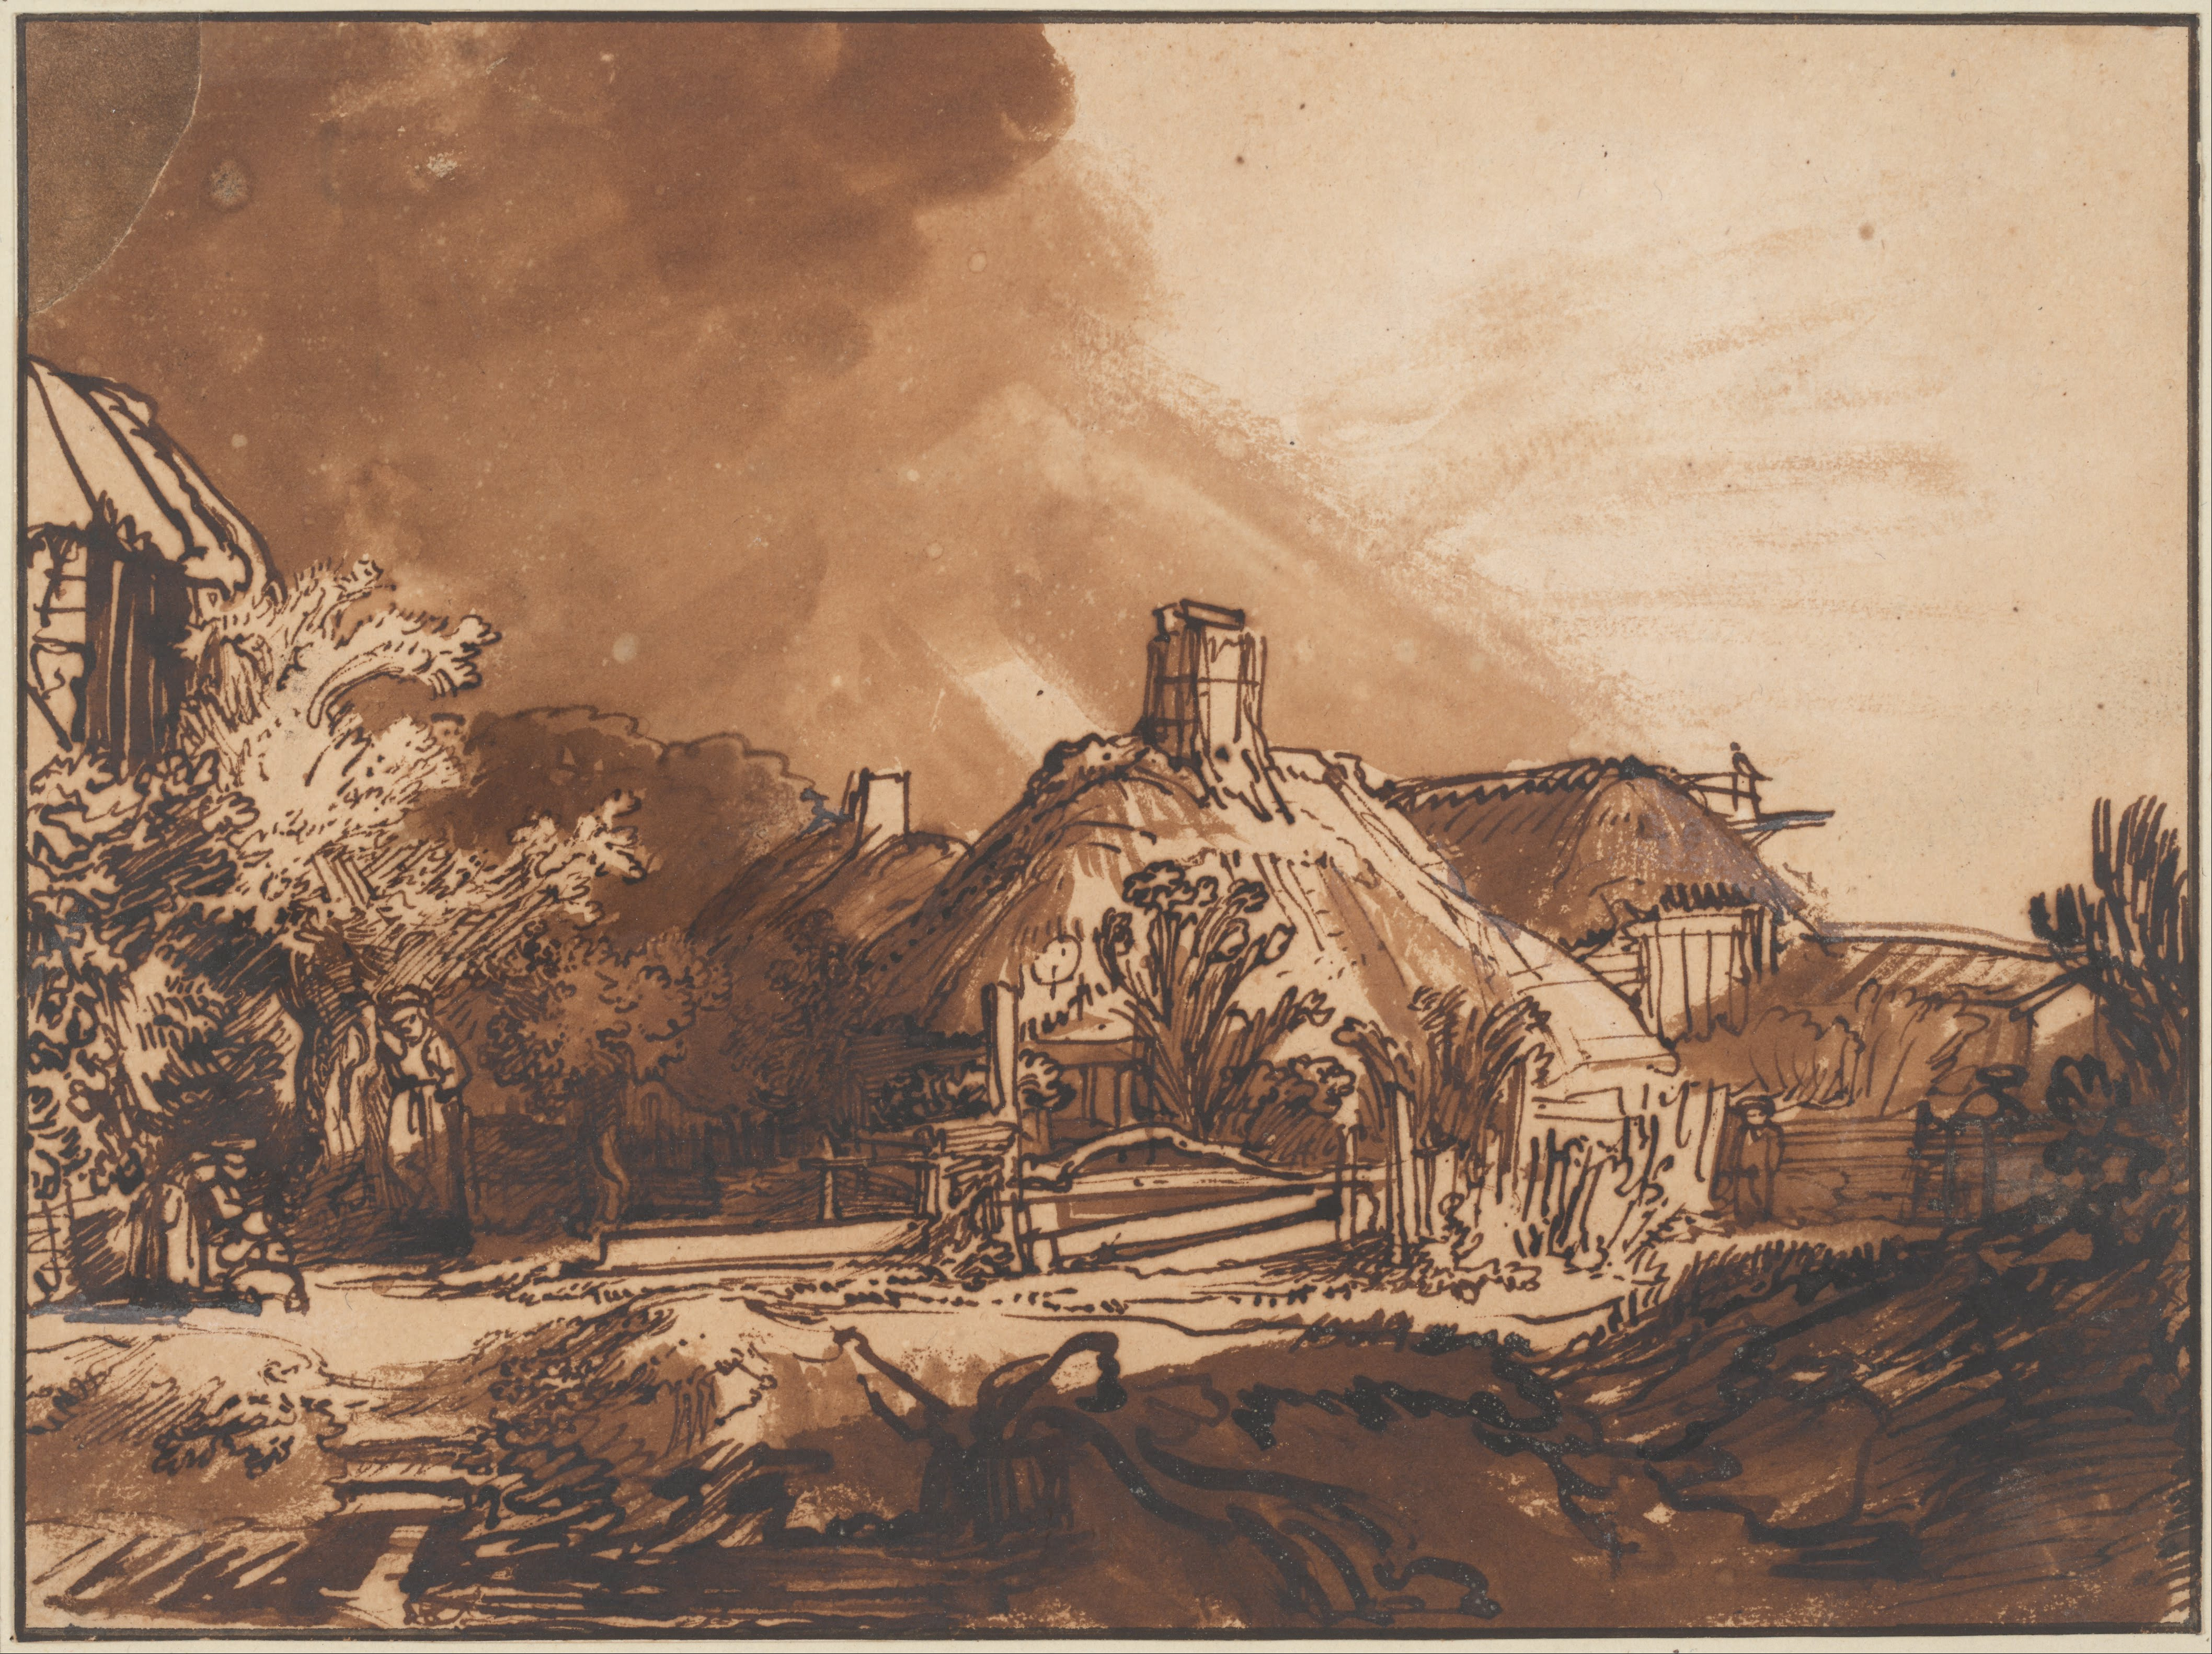 Файл:Rembrandt Harmenszoon van Rijn - Cottages under a Stormy Sky, c. 1635